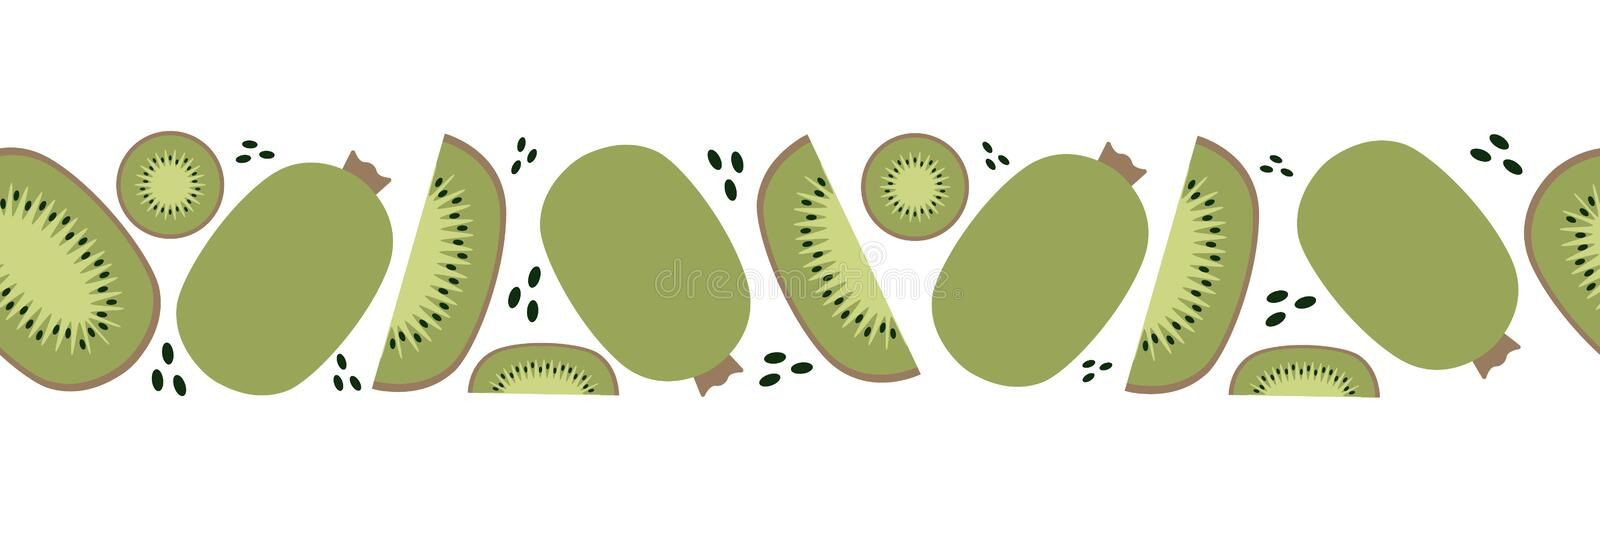 Seamless banner of kiwi, trendy plant, fabric in flat style.  stock illustration